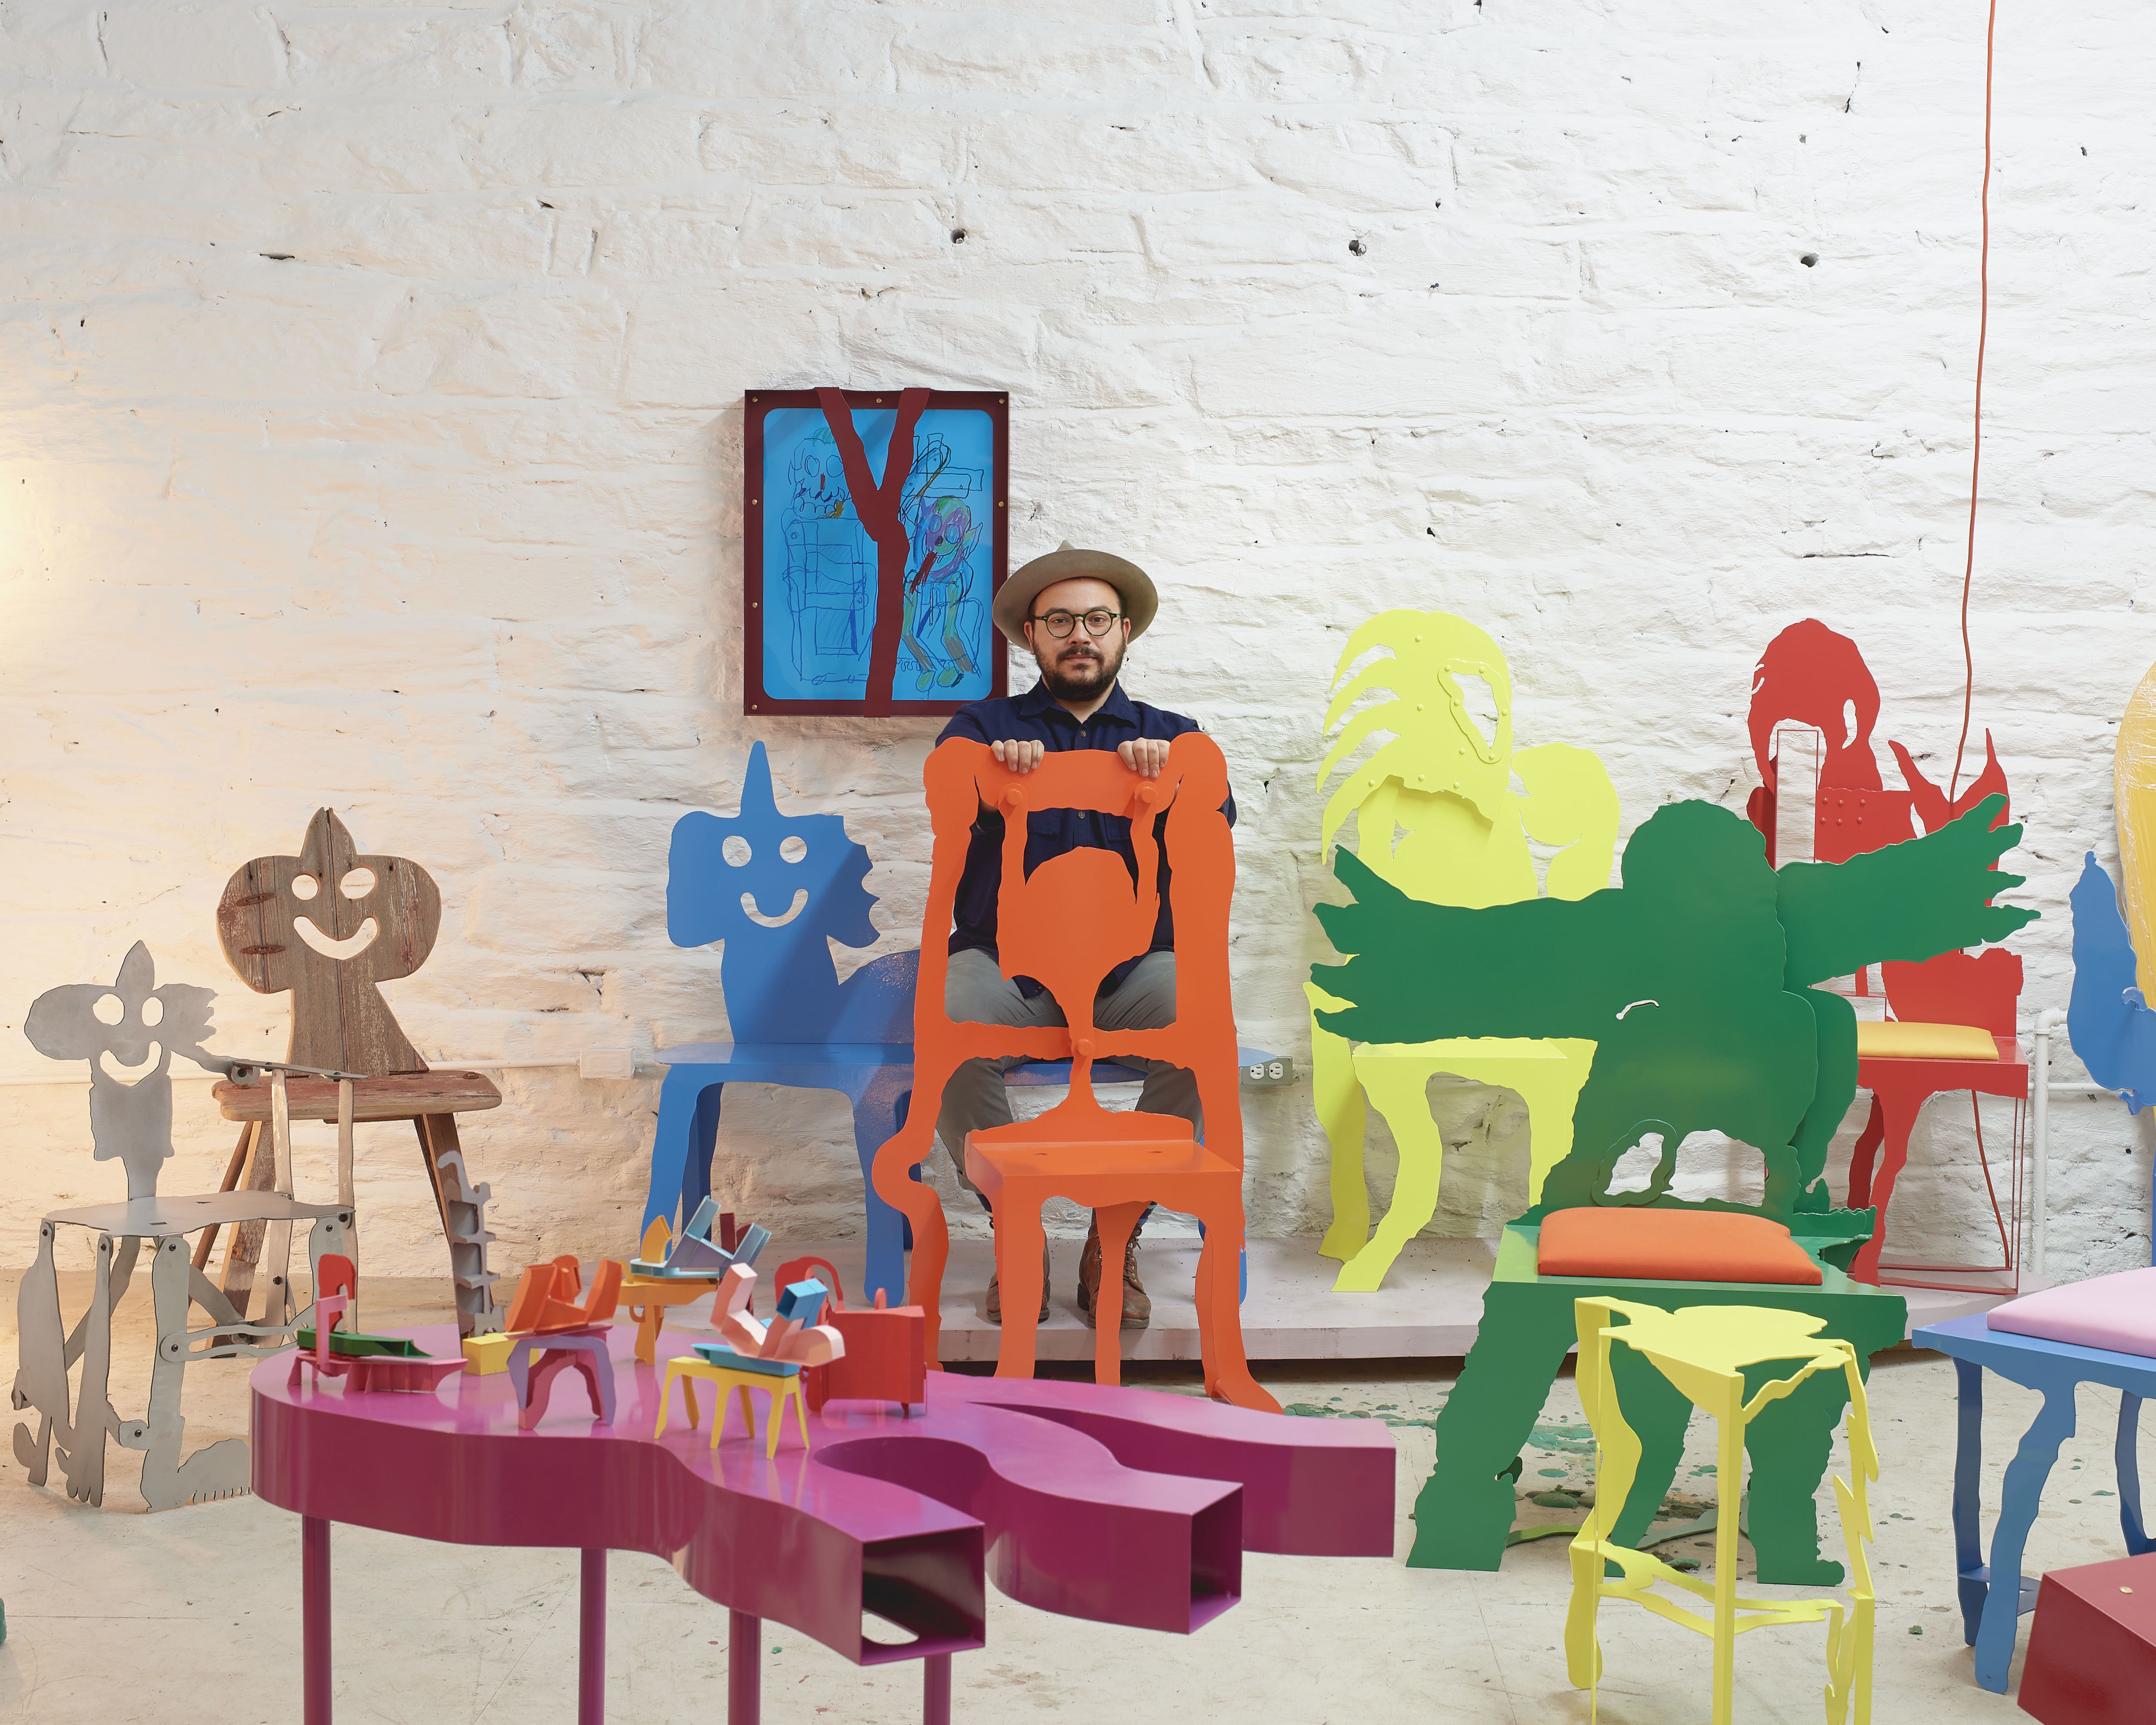 A man standing against a while wall with vibrantly colored furniture of his own designs in front of him